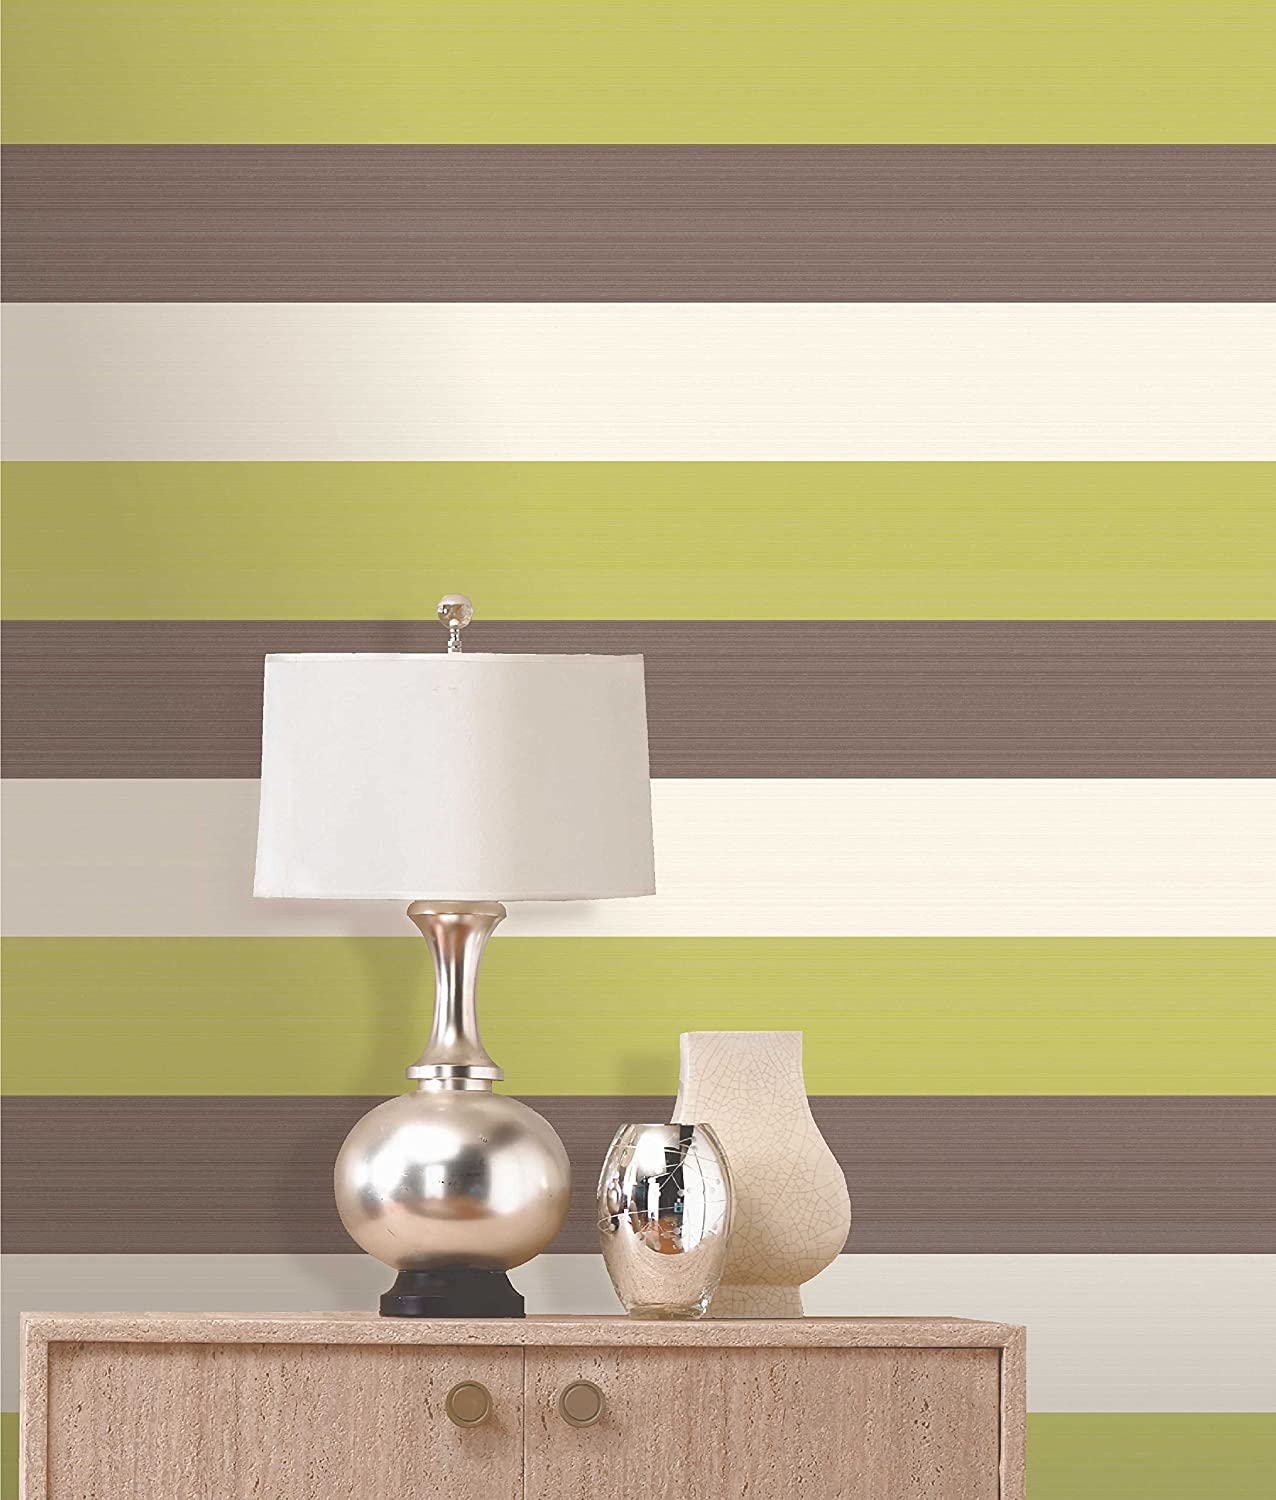 Old Fashioned Horizontal Striped Walls Ideas Gallery - Gallery Wall ...